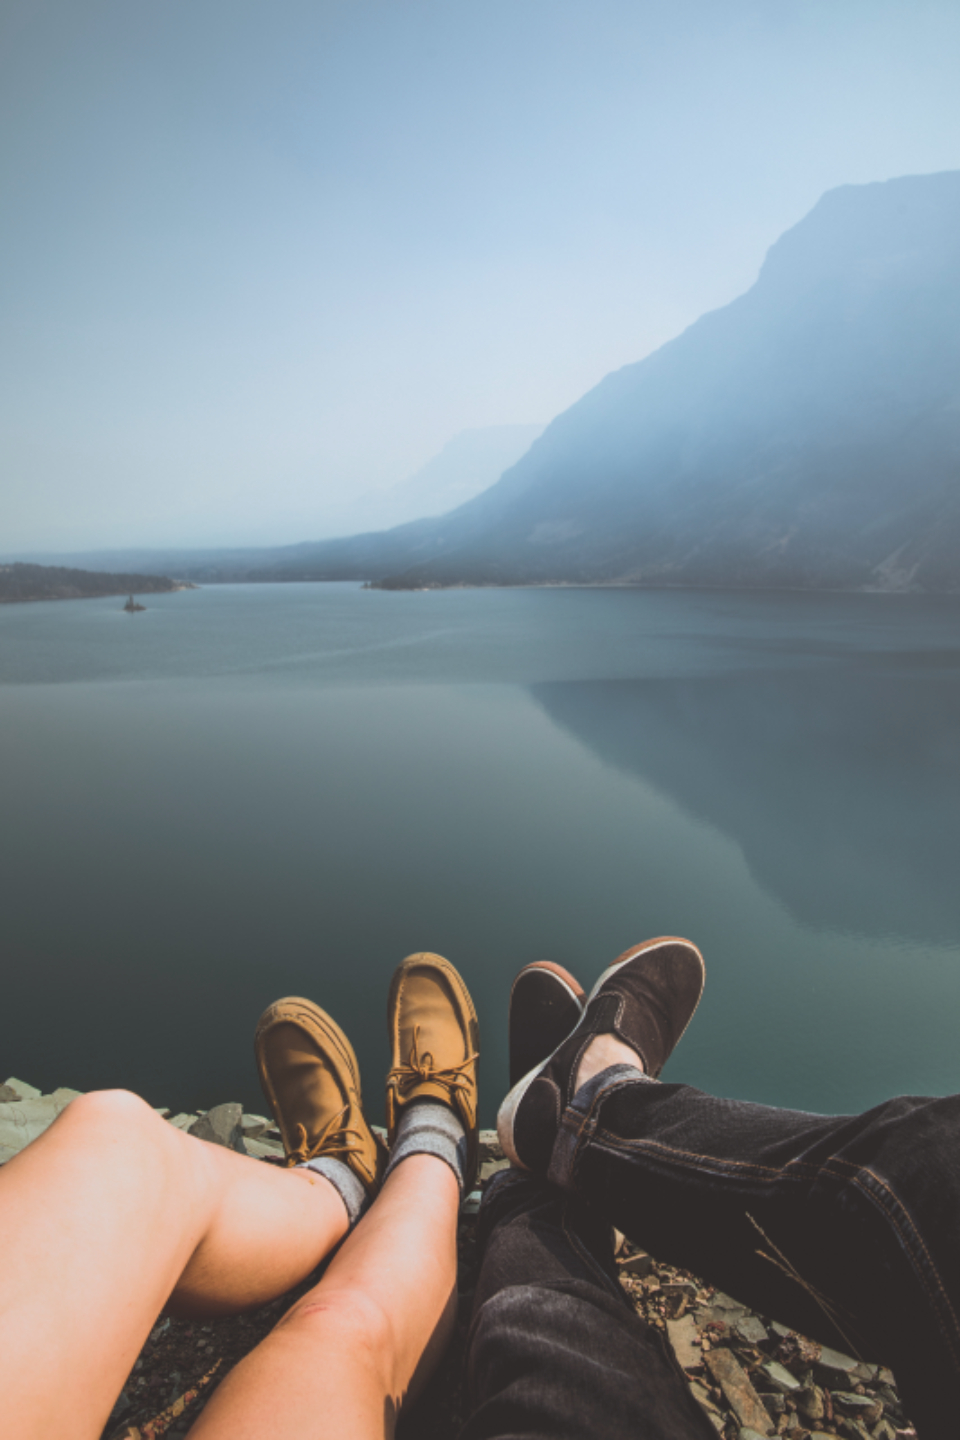 lake mountain mountains earth nature freedom free view shoes feet leg legs couple love cute date vacation